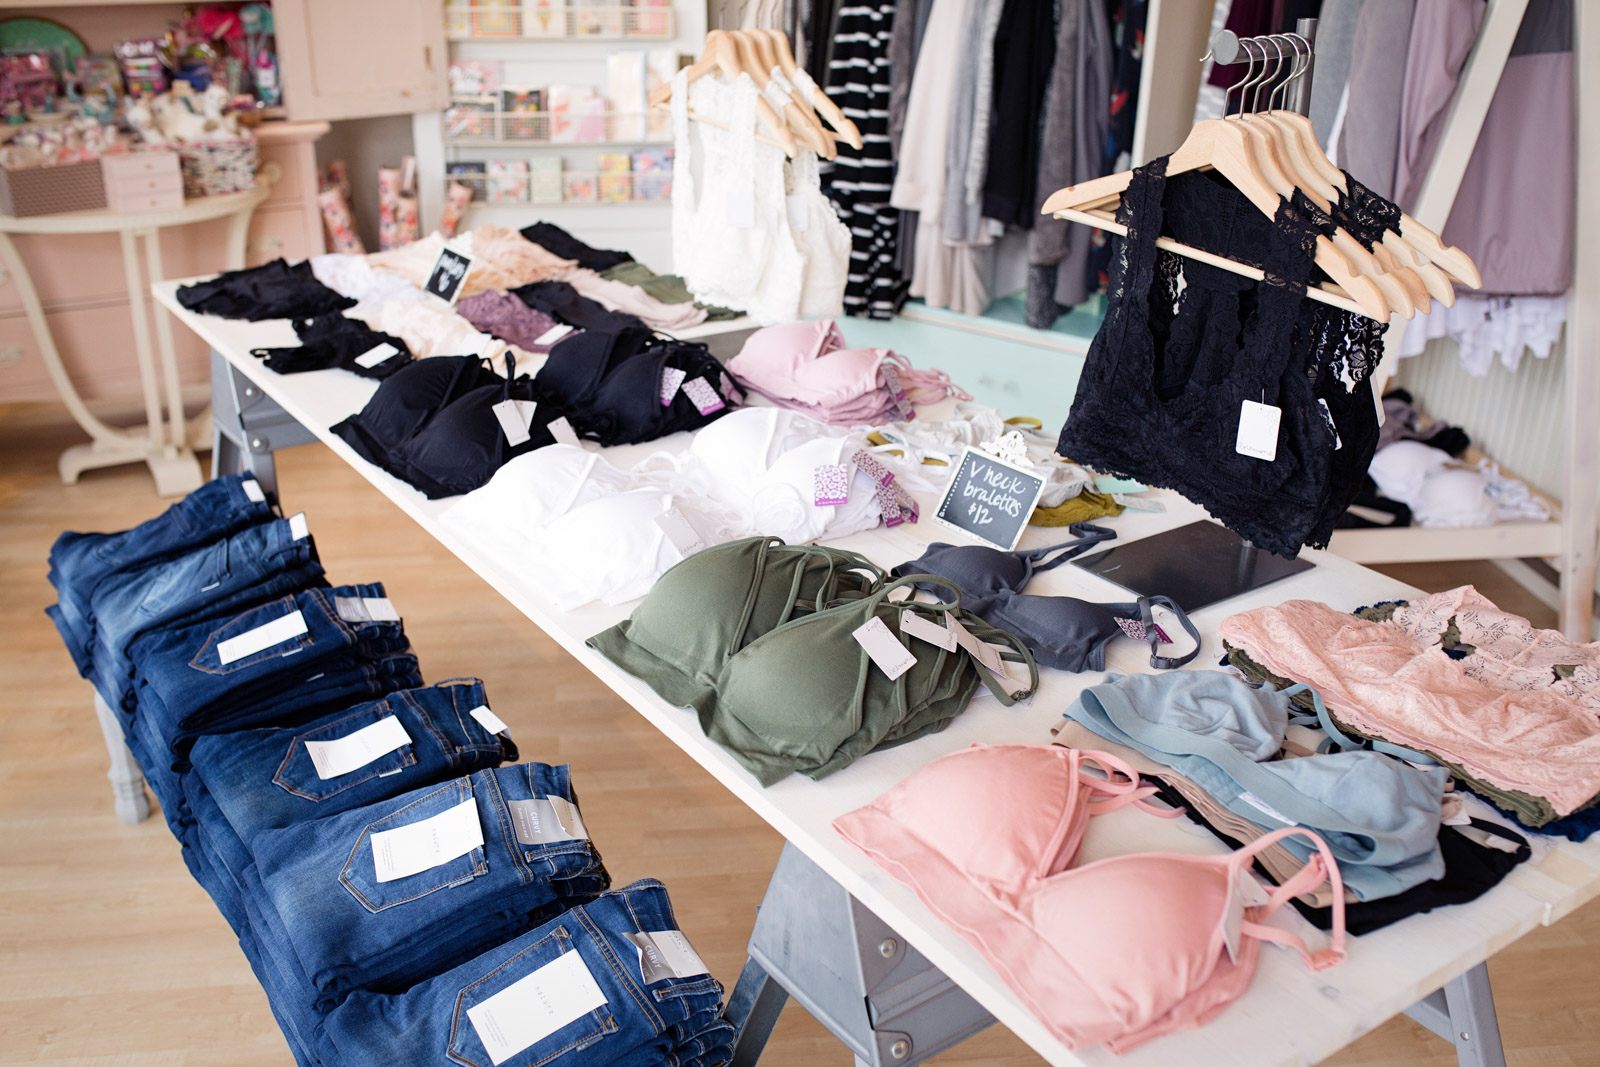 Meadow boutique seattle retail clothing store Yuliya Rae photography branding services-15.jpg